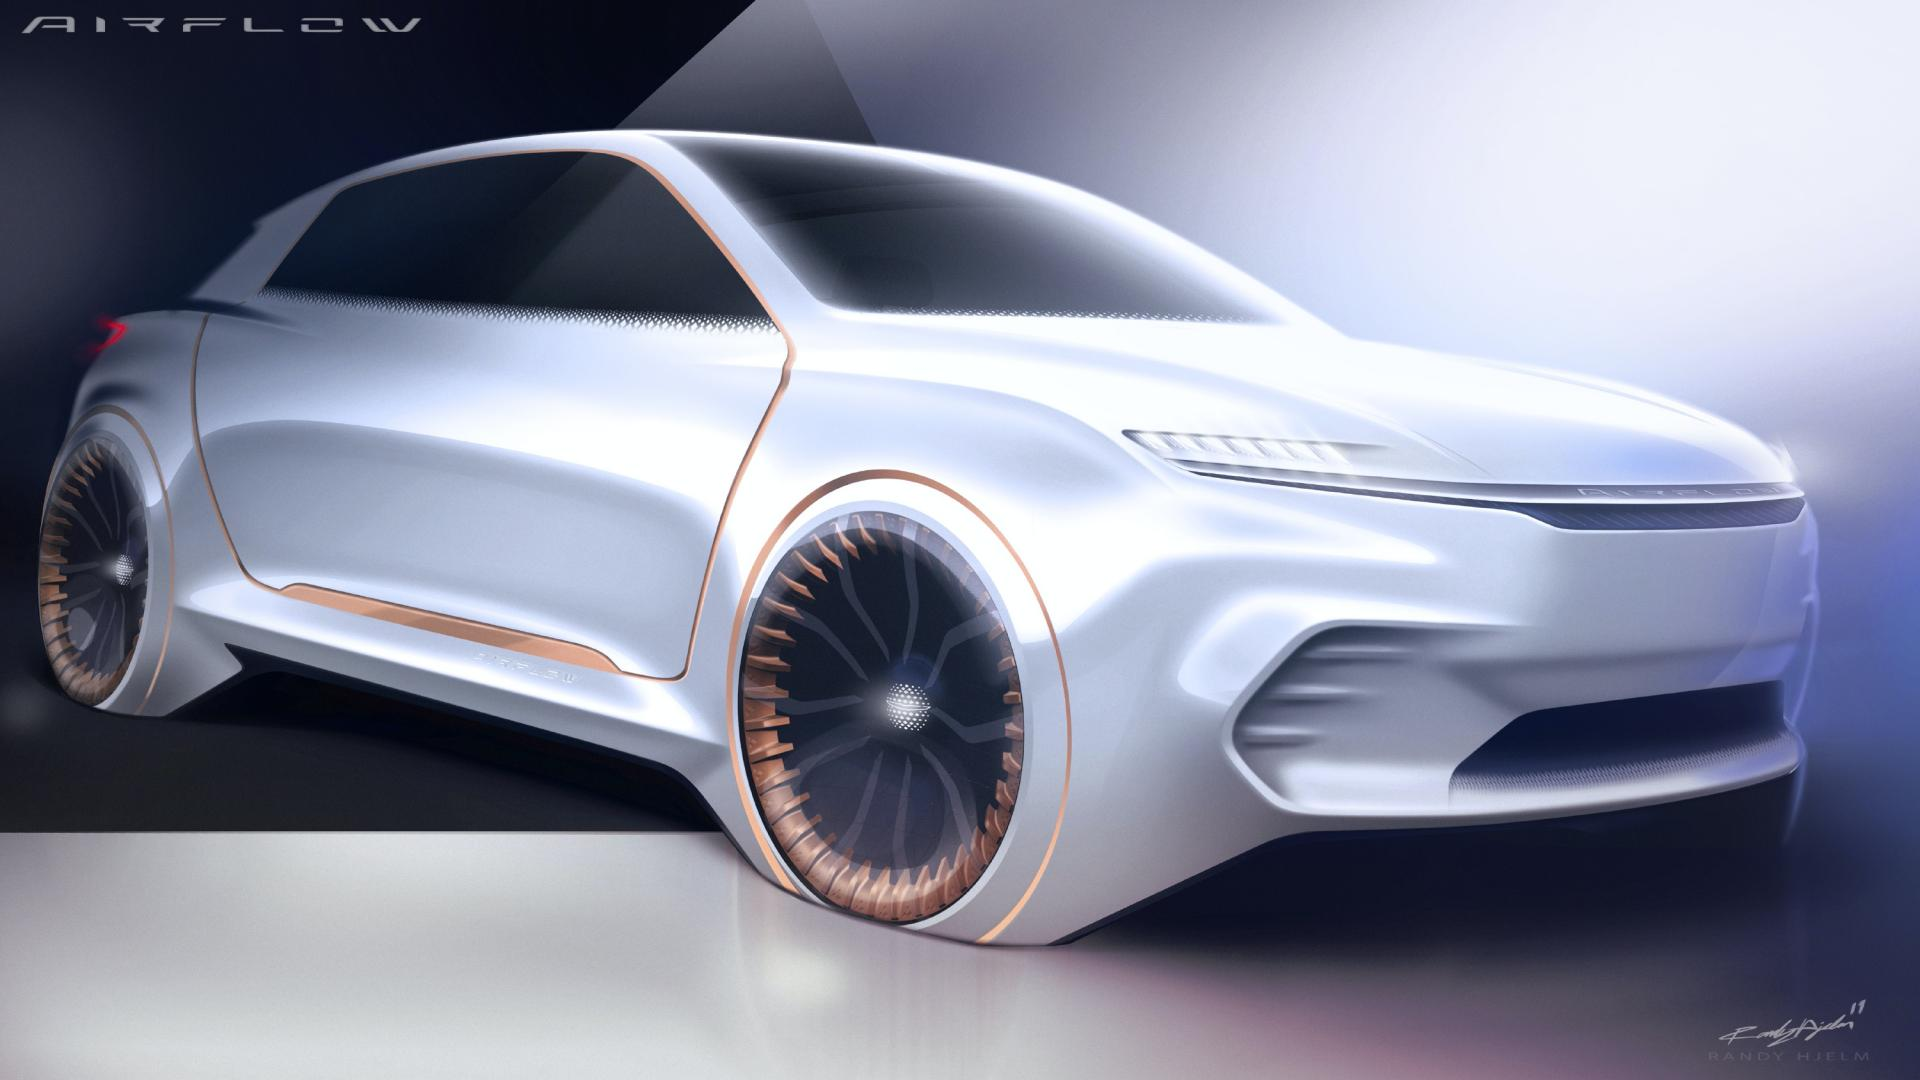 2020-Chrysler-Airflow-Vision-concept-1